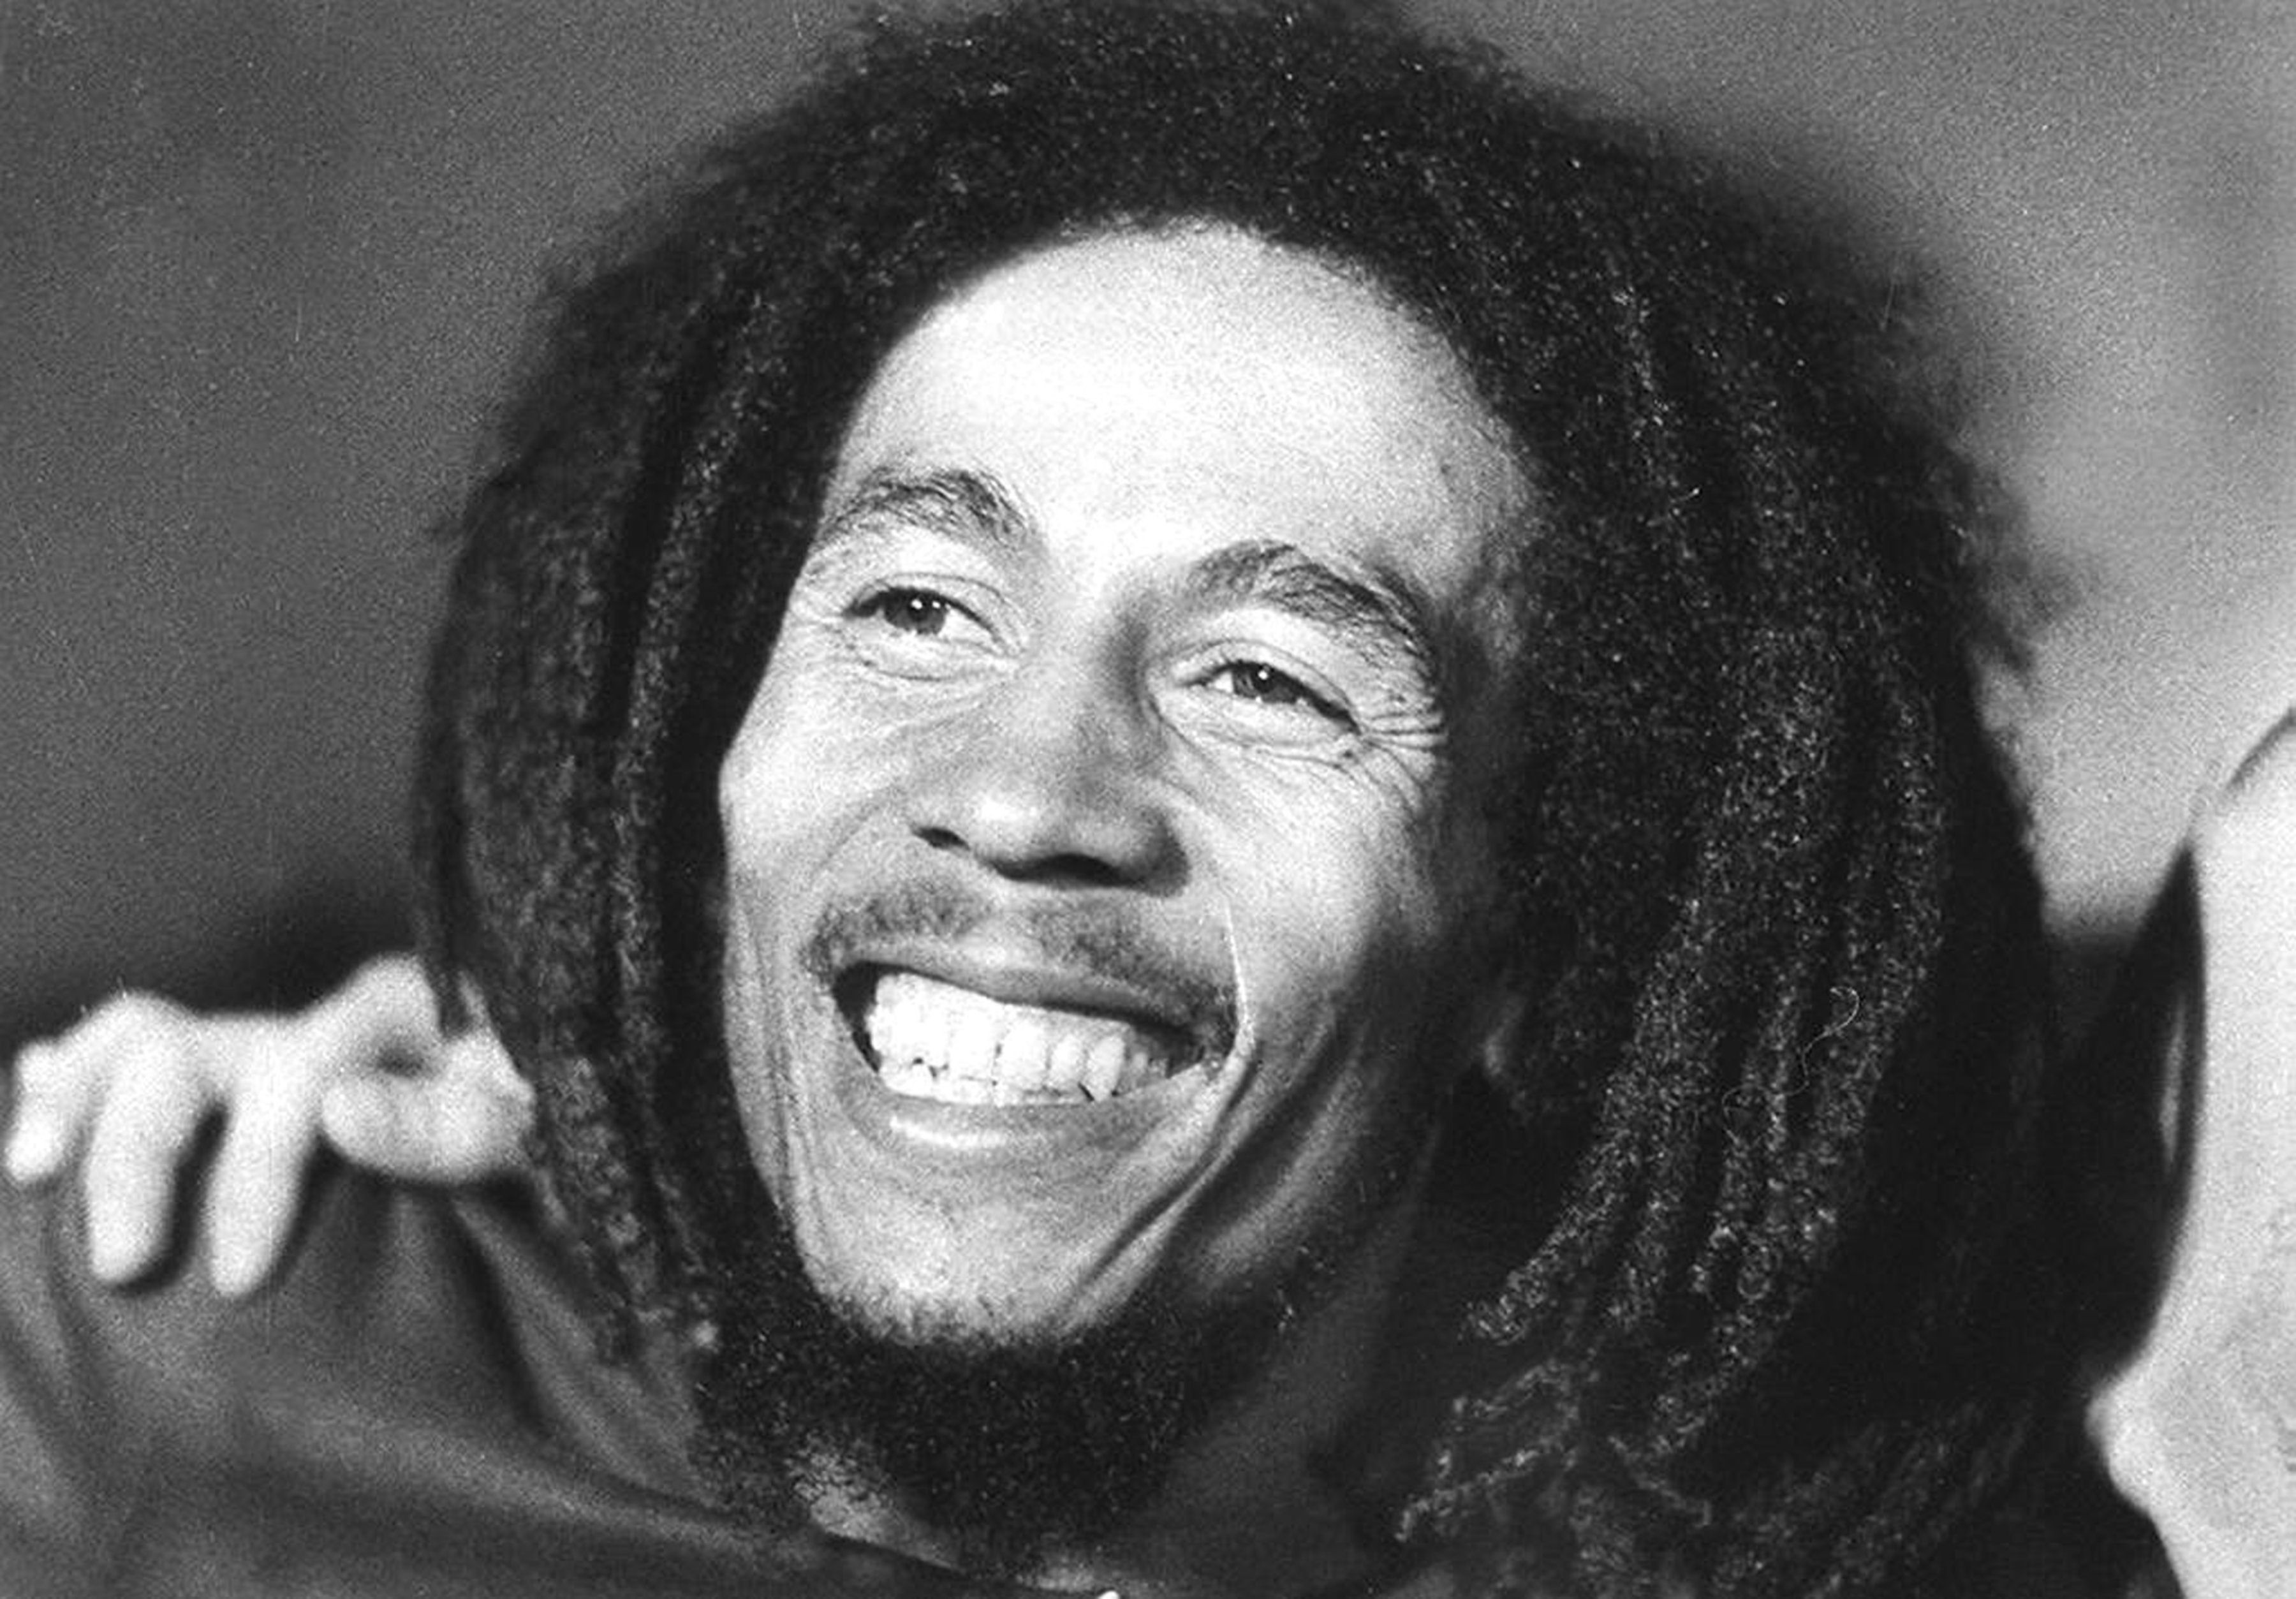 bob marley – out of spacebob marley слушать, bob marley скачать, bob marley is this love, bob marley sun is shining, bob marley redemption song, bob marley bad boy скачать, bob marley цитаты, bob marley three little birds, bob marley songs, bob marley sozleri, bob marley dont worry, bob marley – out of space, bob marley could you be loved, bob marley i shot the sheriff, bob marley аккорды, bob marley redemption song перевод, bob marley jammin, bob marley piece of ganja, bob marley out of space перевод, bob marley a lalala long